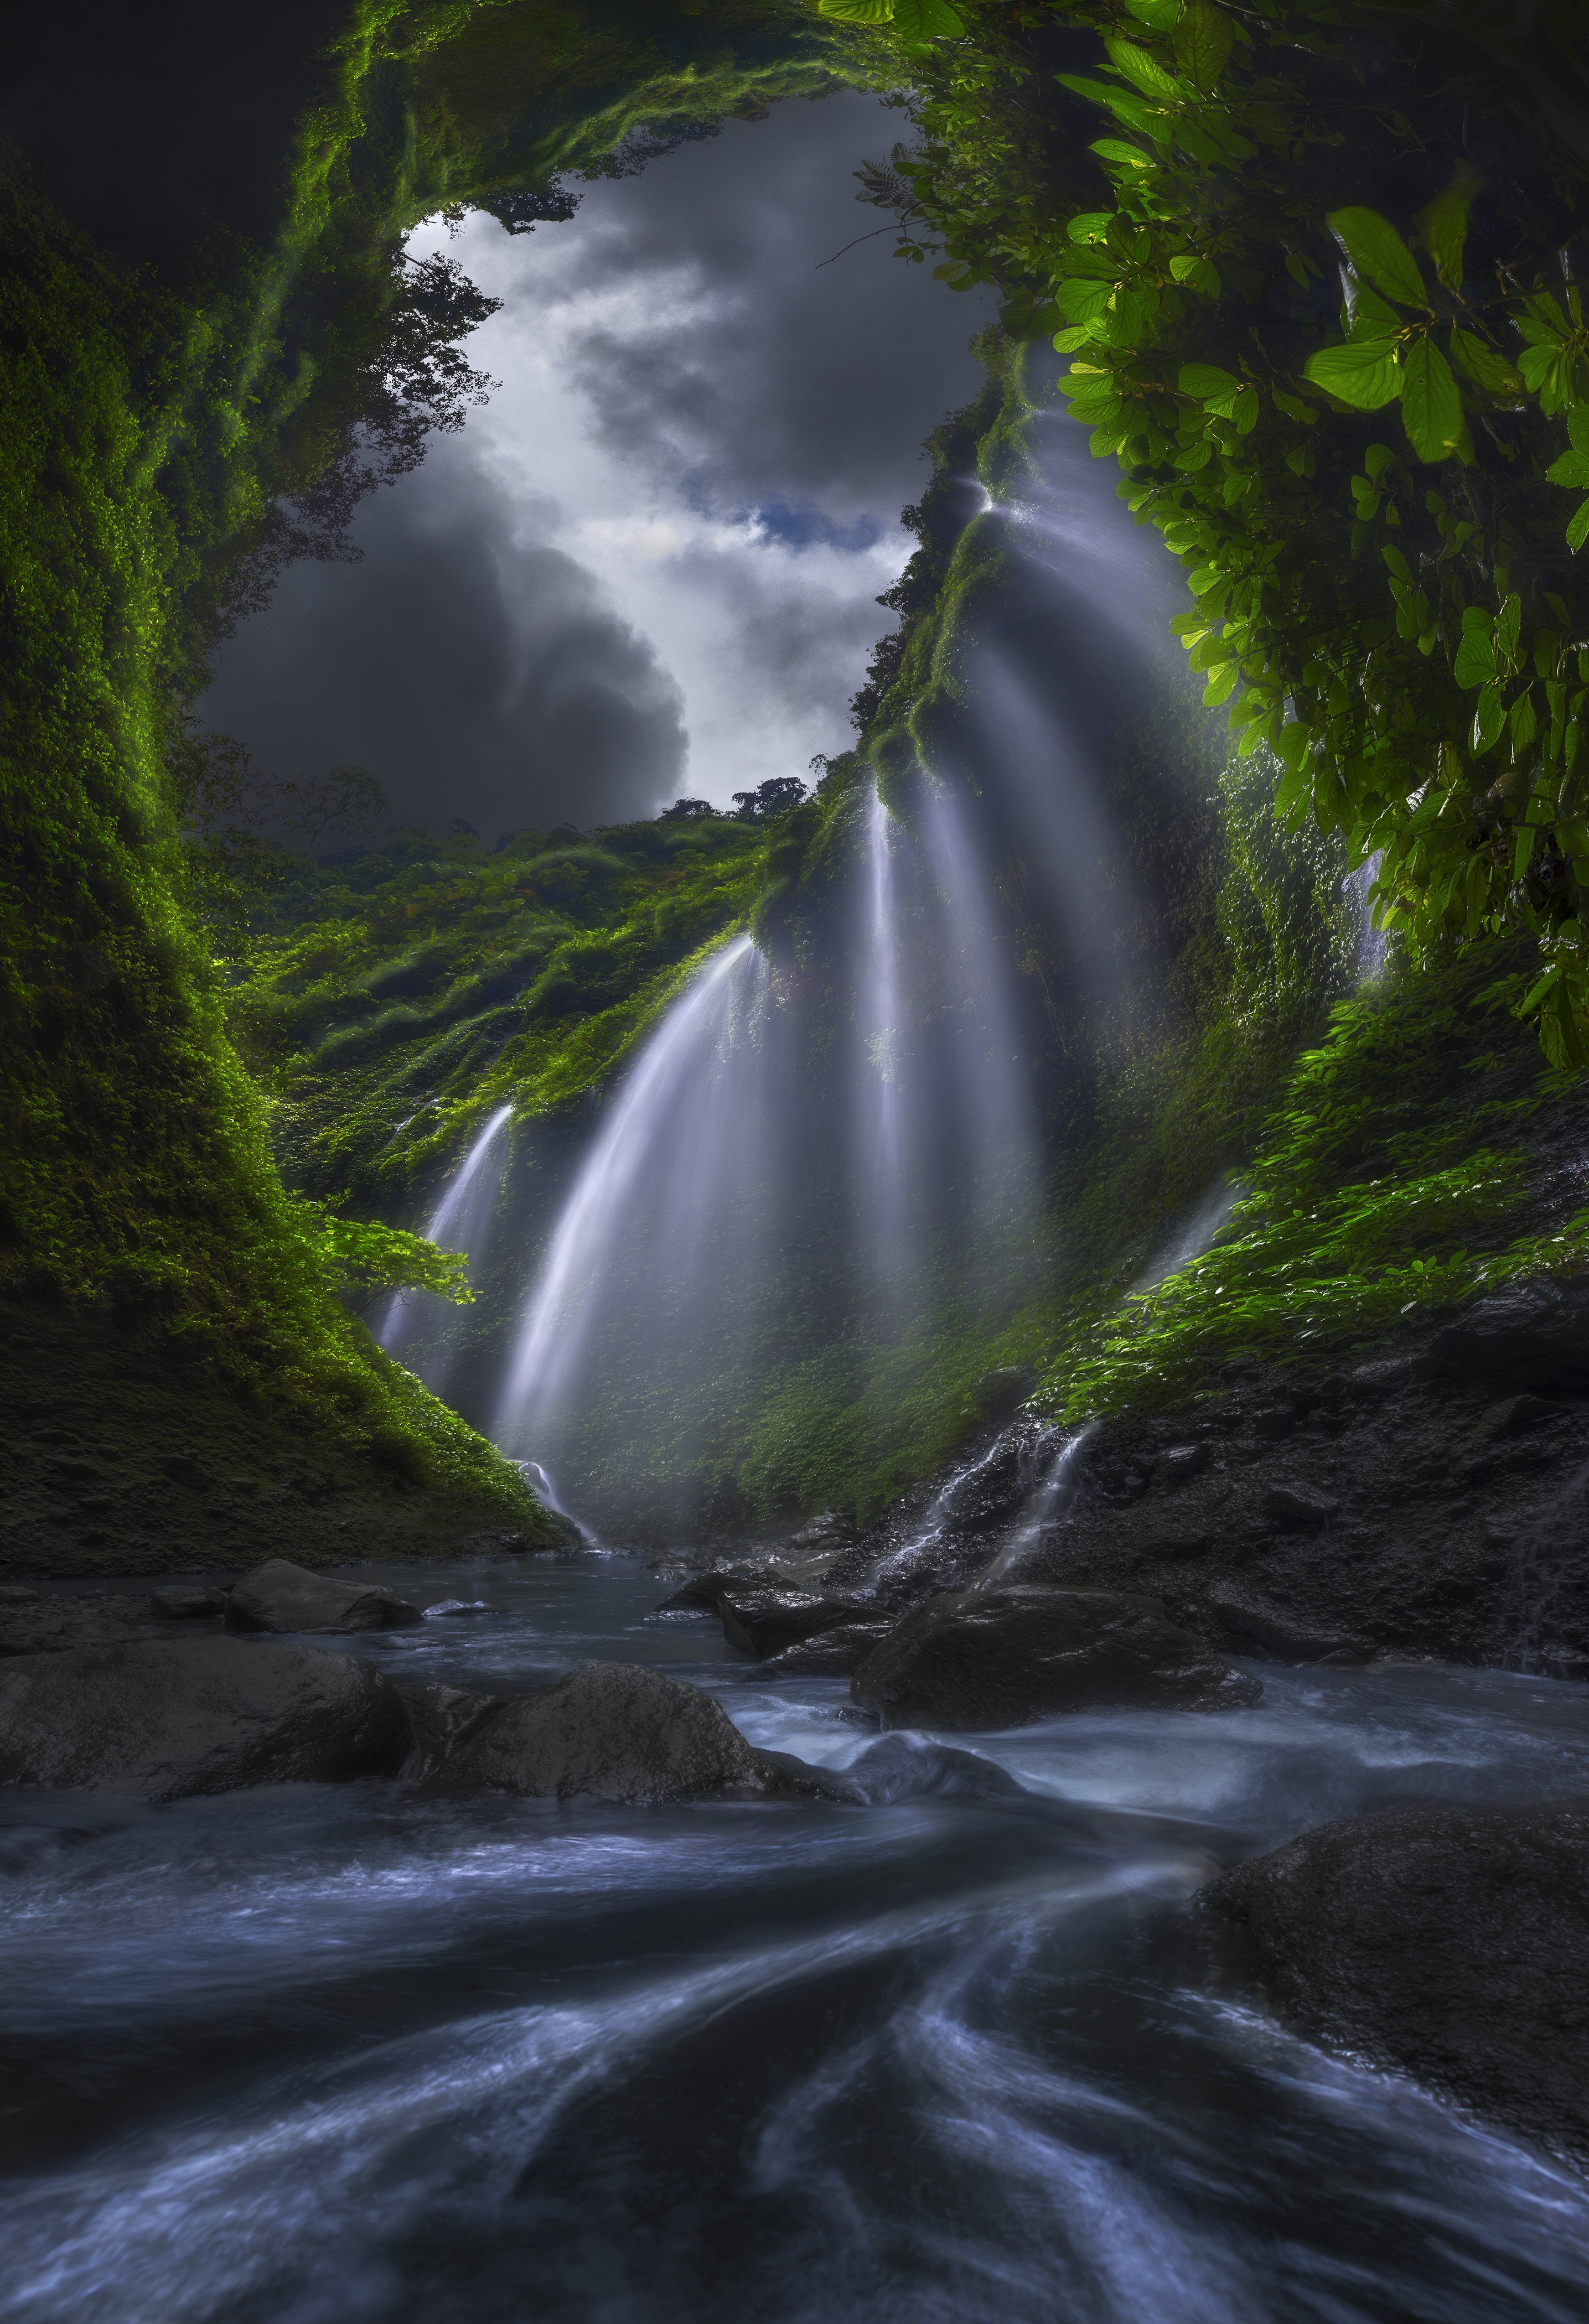 A fine art photo from the perspective inside a cave or hiding place, showing green hills and white light streaming in